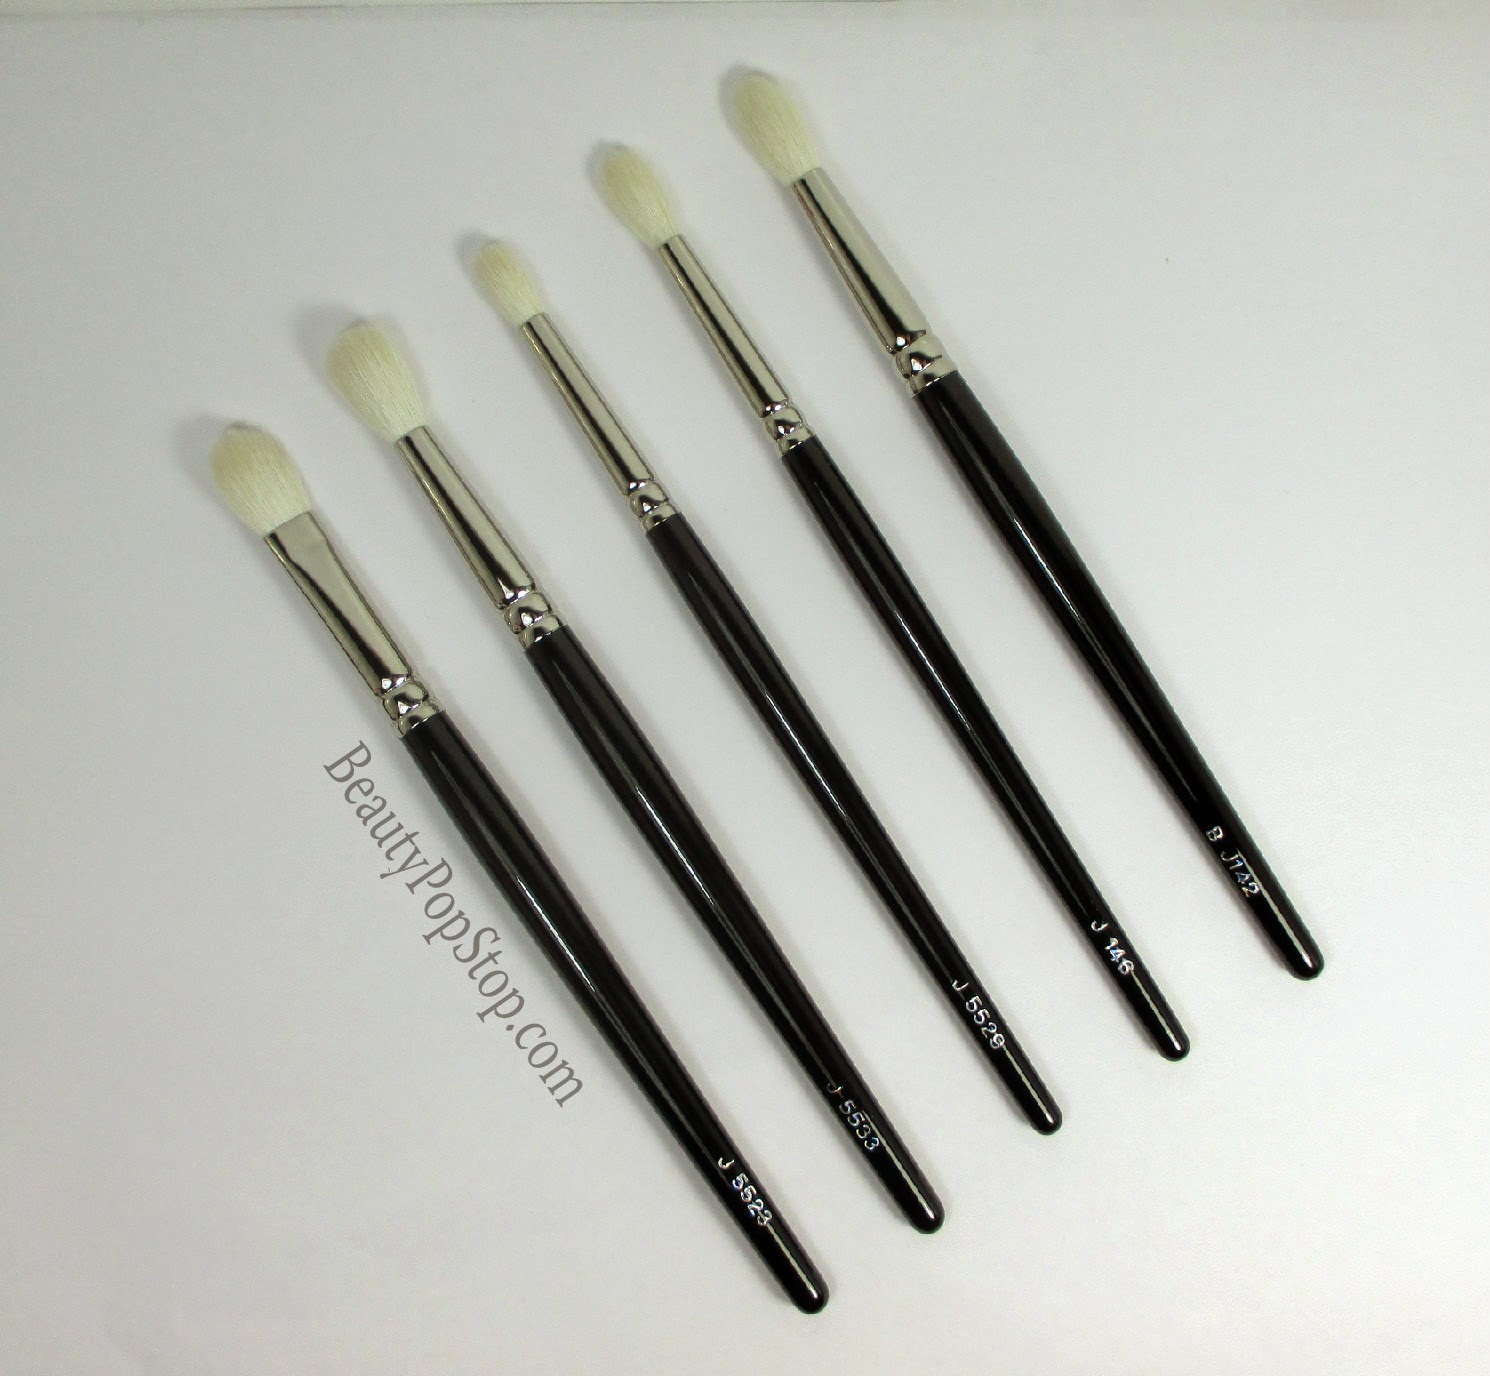 hakuhodo japanese makeup brush review J5523, j5533, j142, j146, j5529